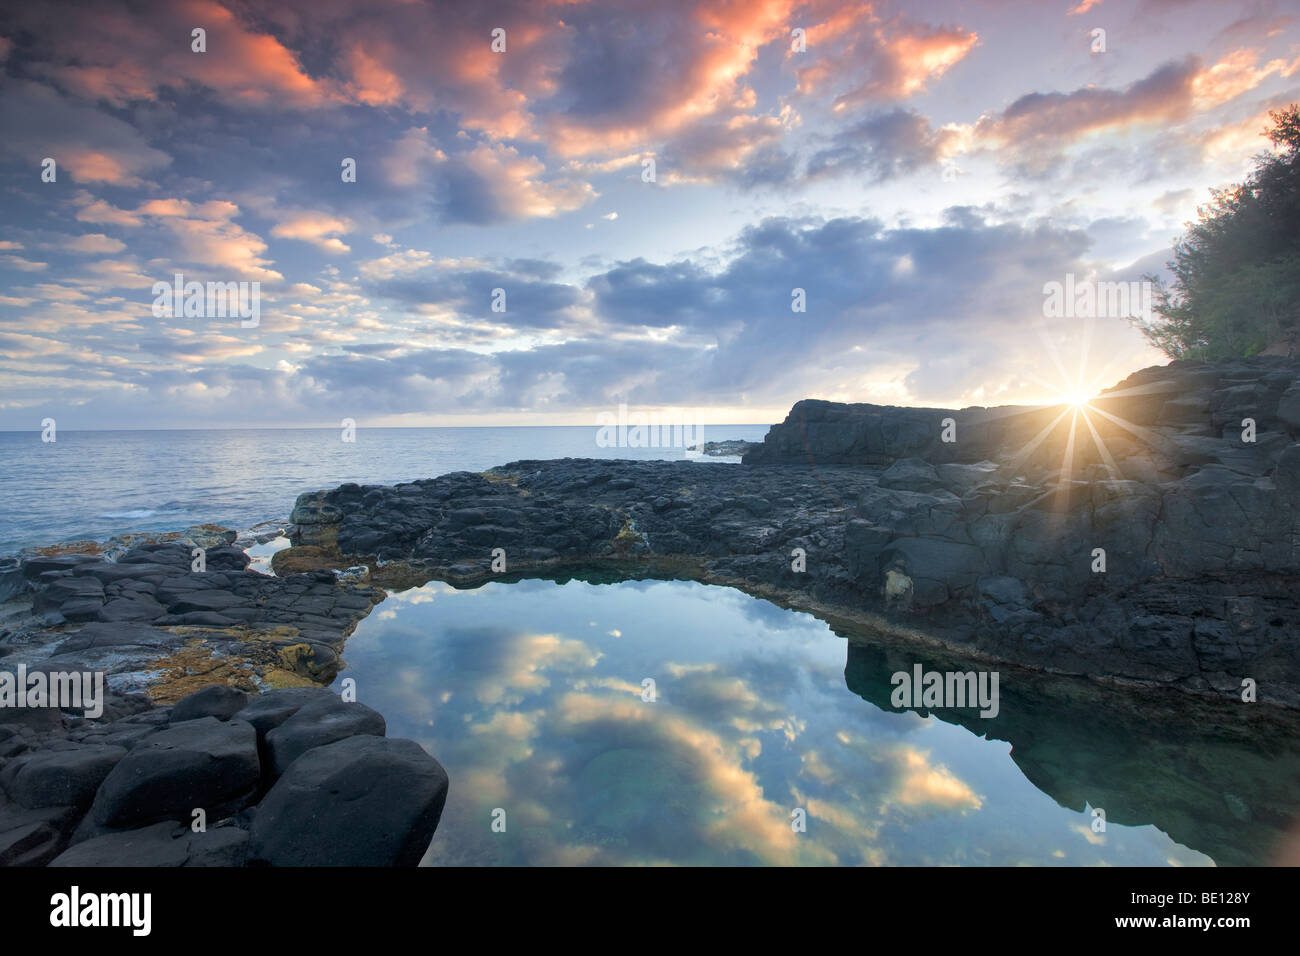 Queen's Bath with sunrise. Kauai, Hawaii. - Stock Image